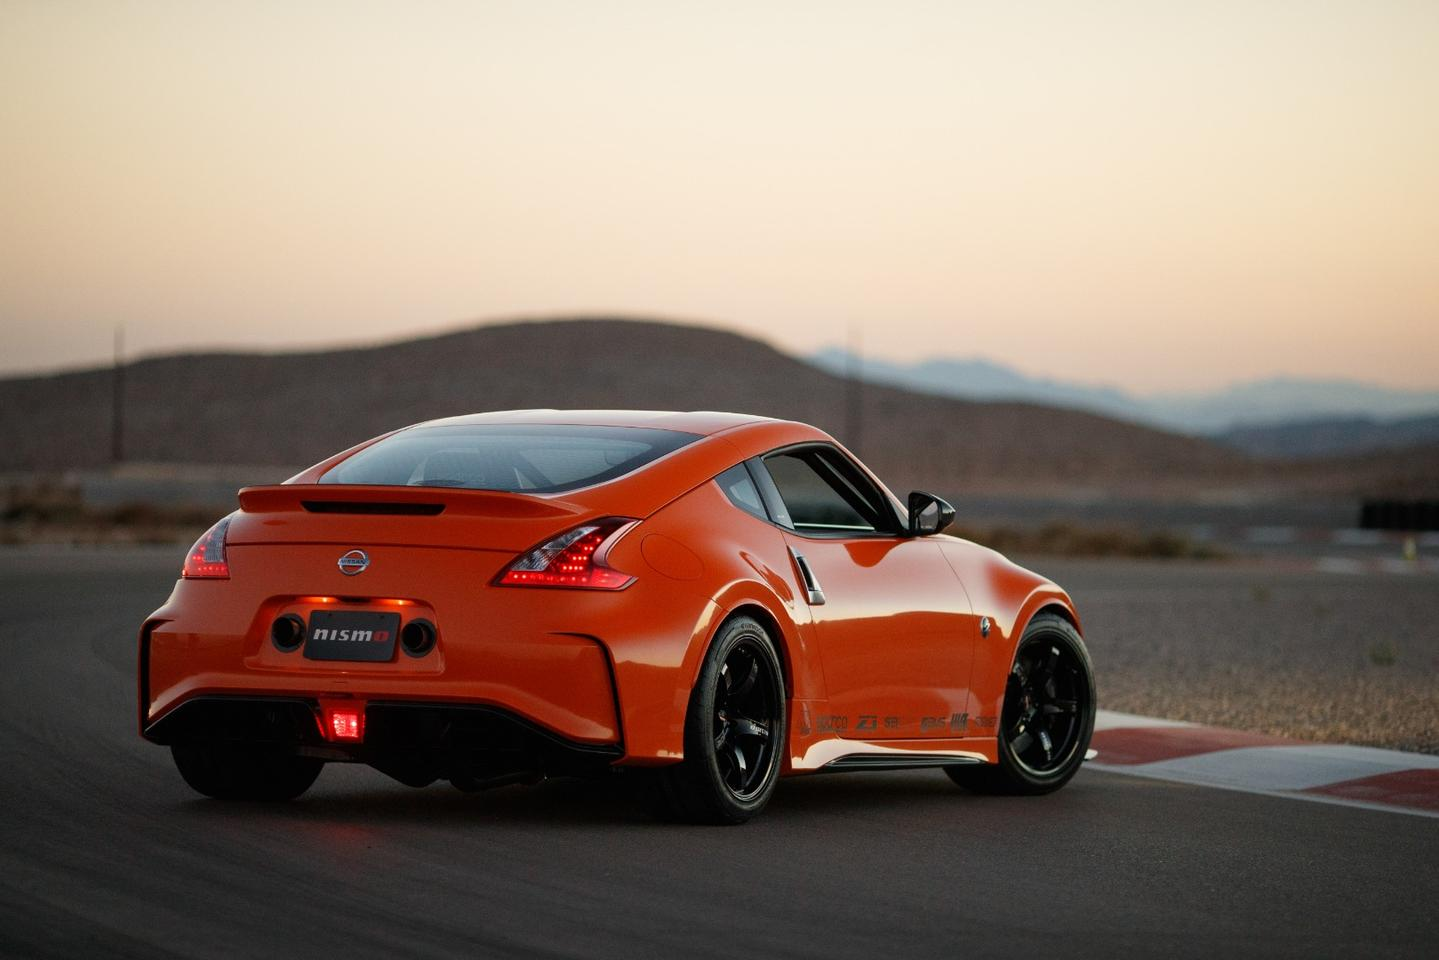 The goal of Project Clubsport is to show what Nissan 370Z owners can do with their own rides using fully-available aftermarket or Nissan Motorsports parts